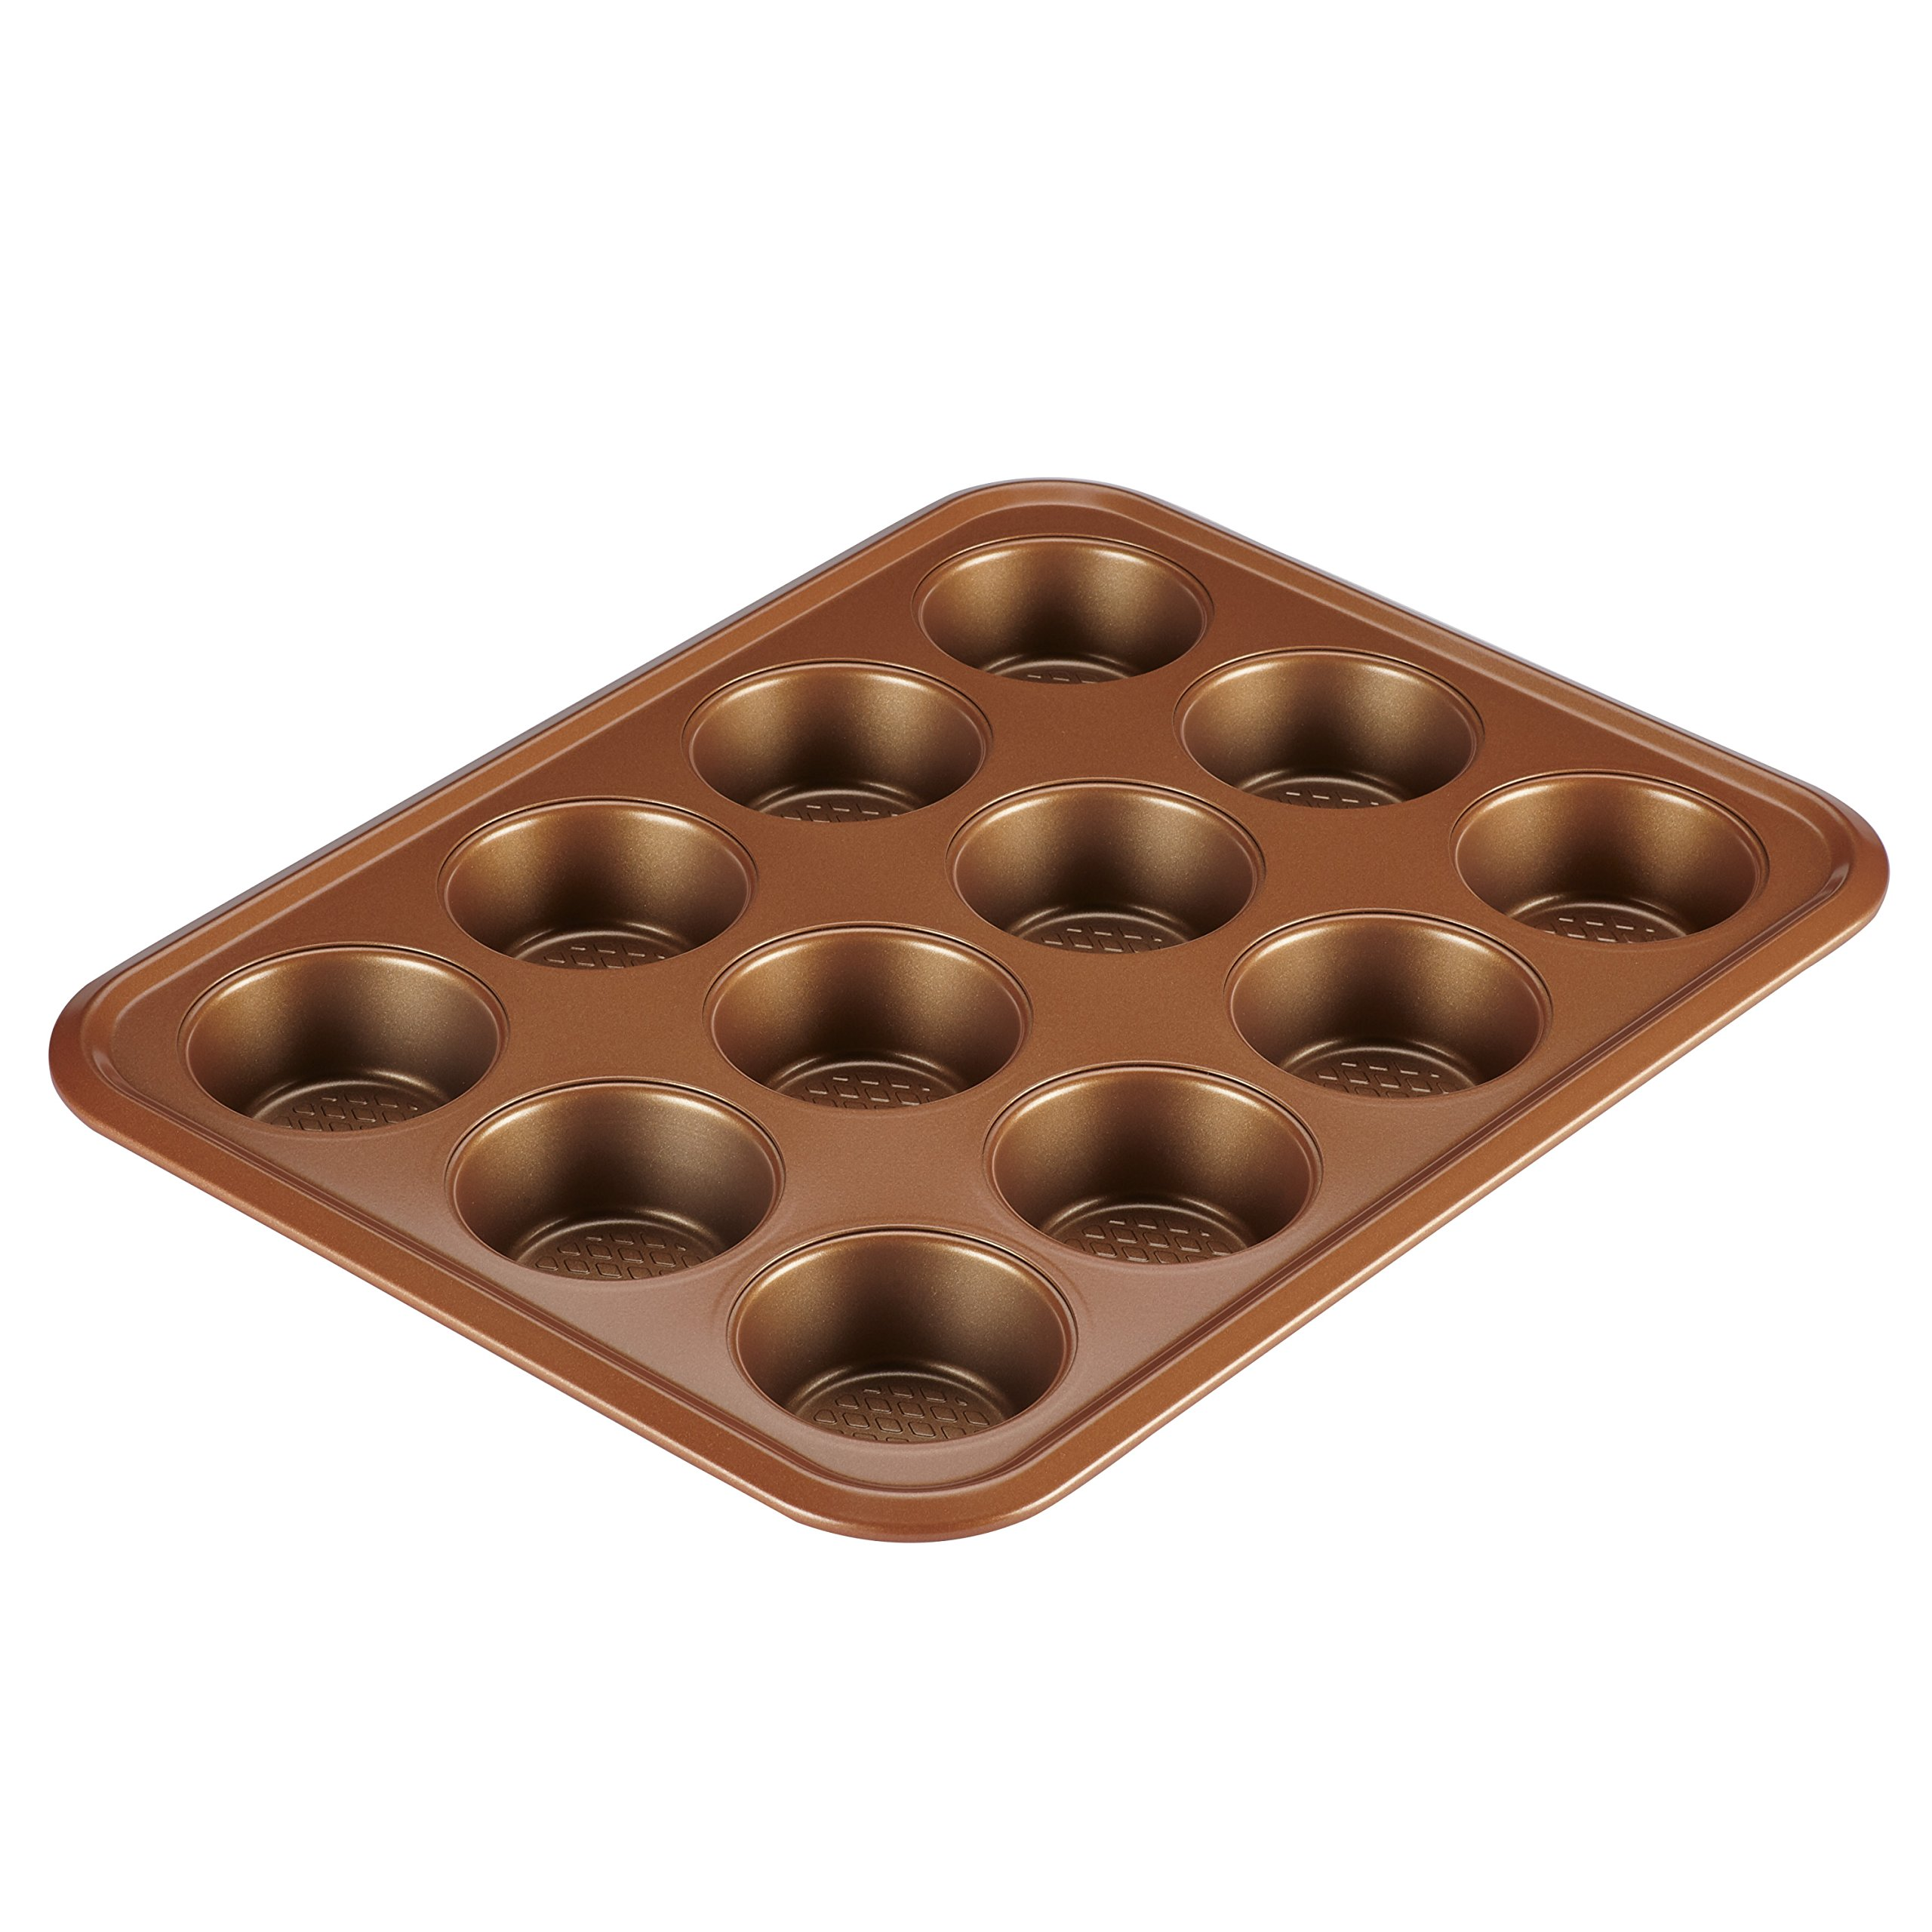 Ayesha Curry Bakeware 12-Cup Muffin Pan, Copper